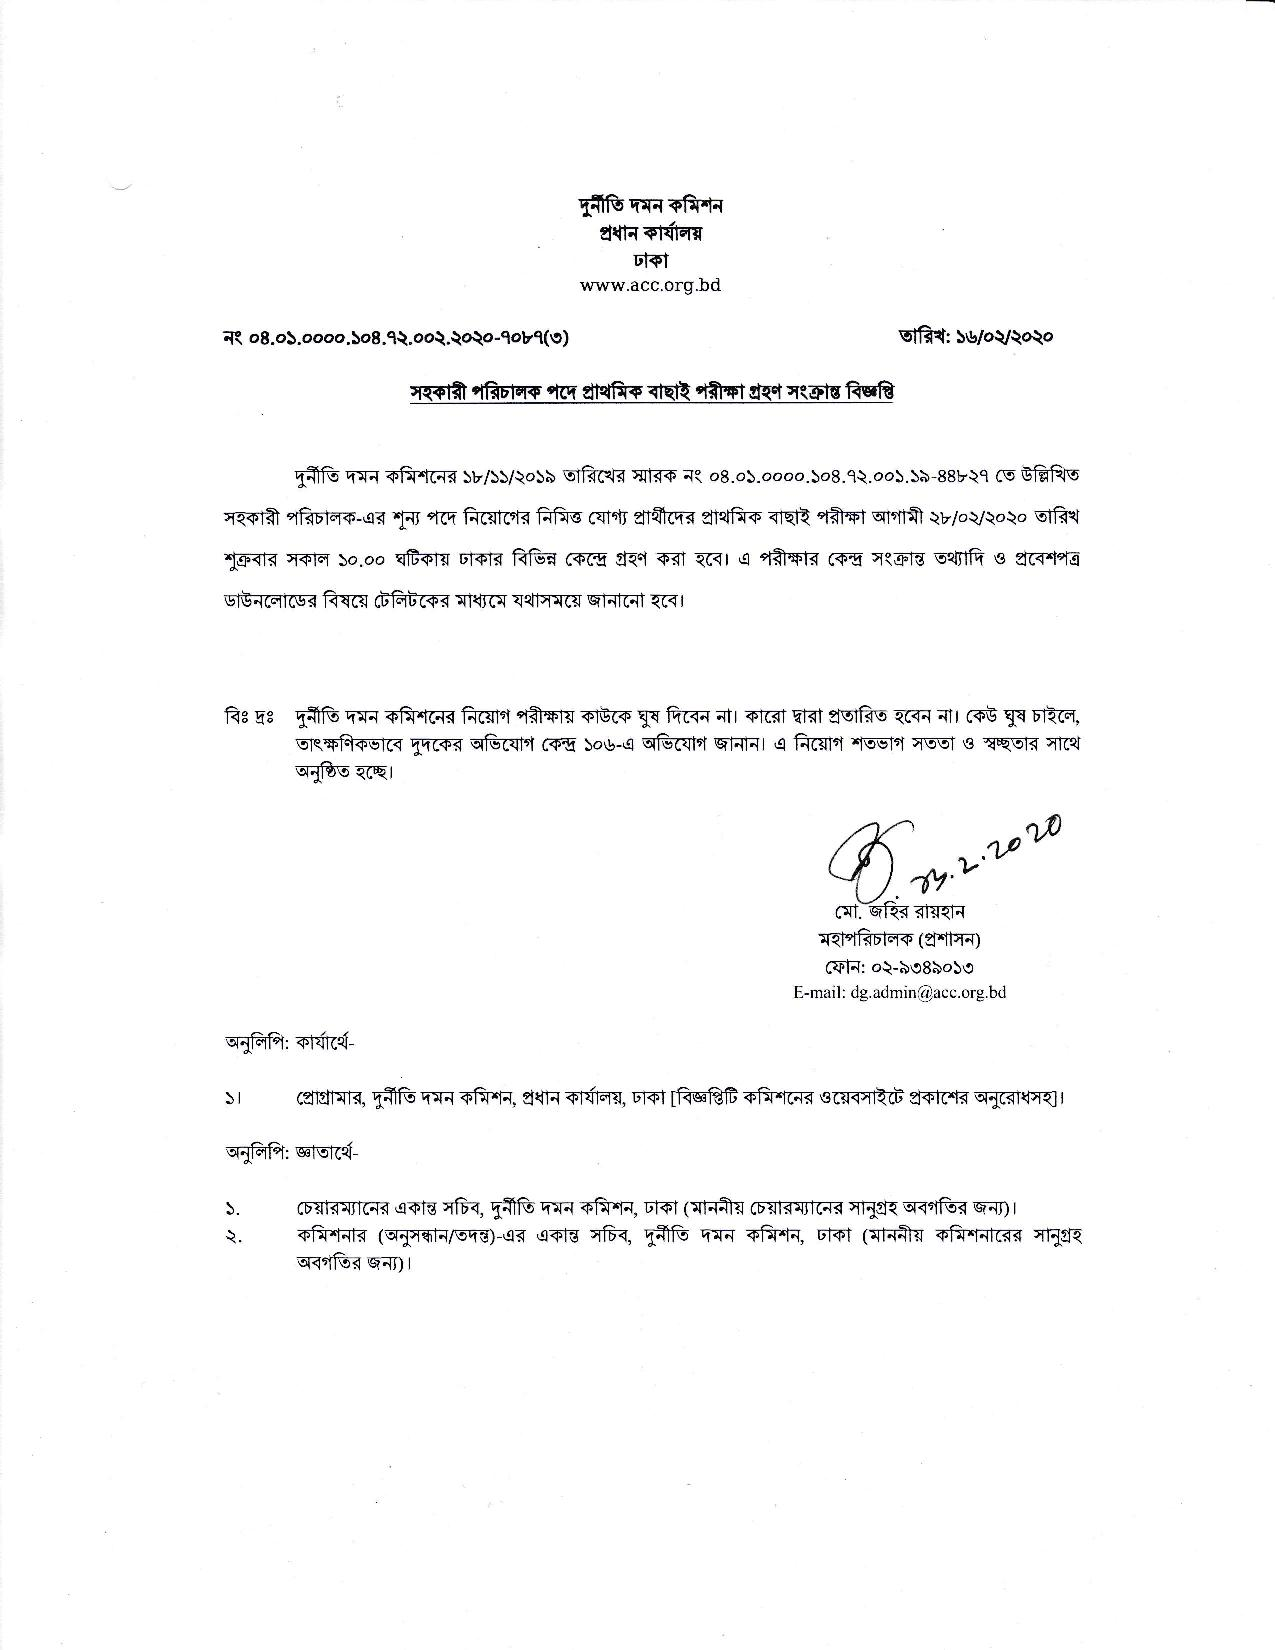 Anti Corruption Commission (ACC) MCQ exam date and seat plan 2020